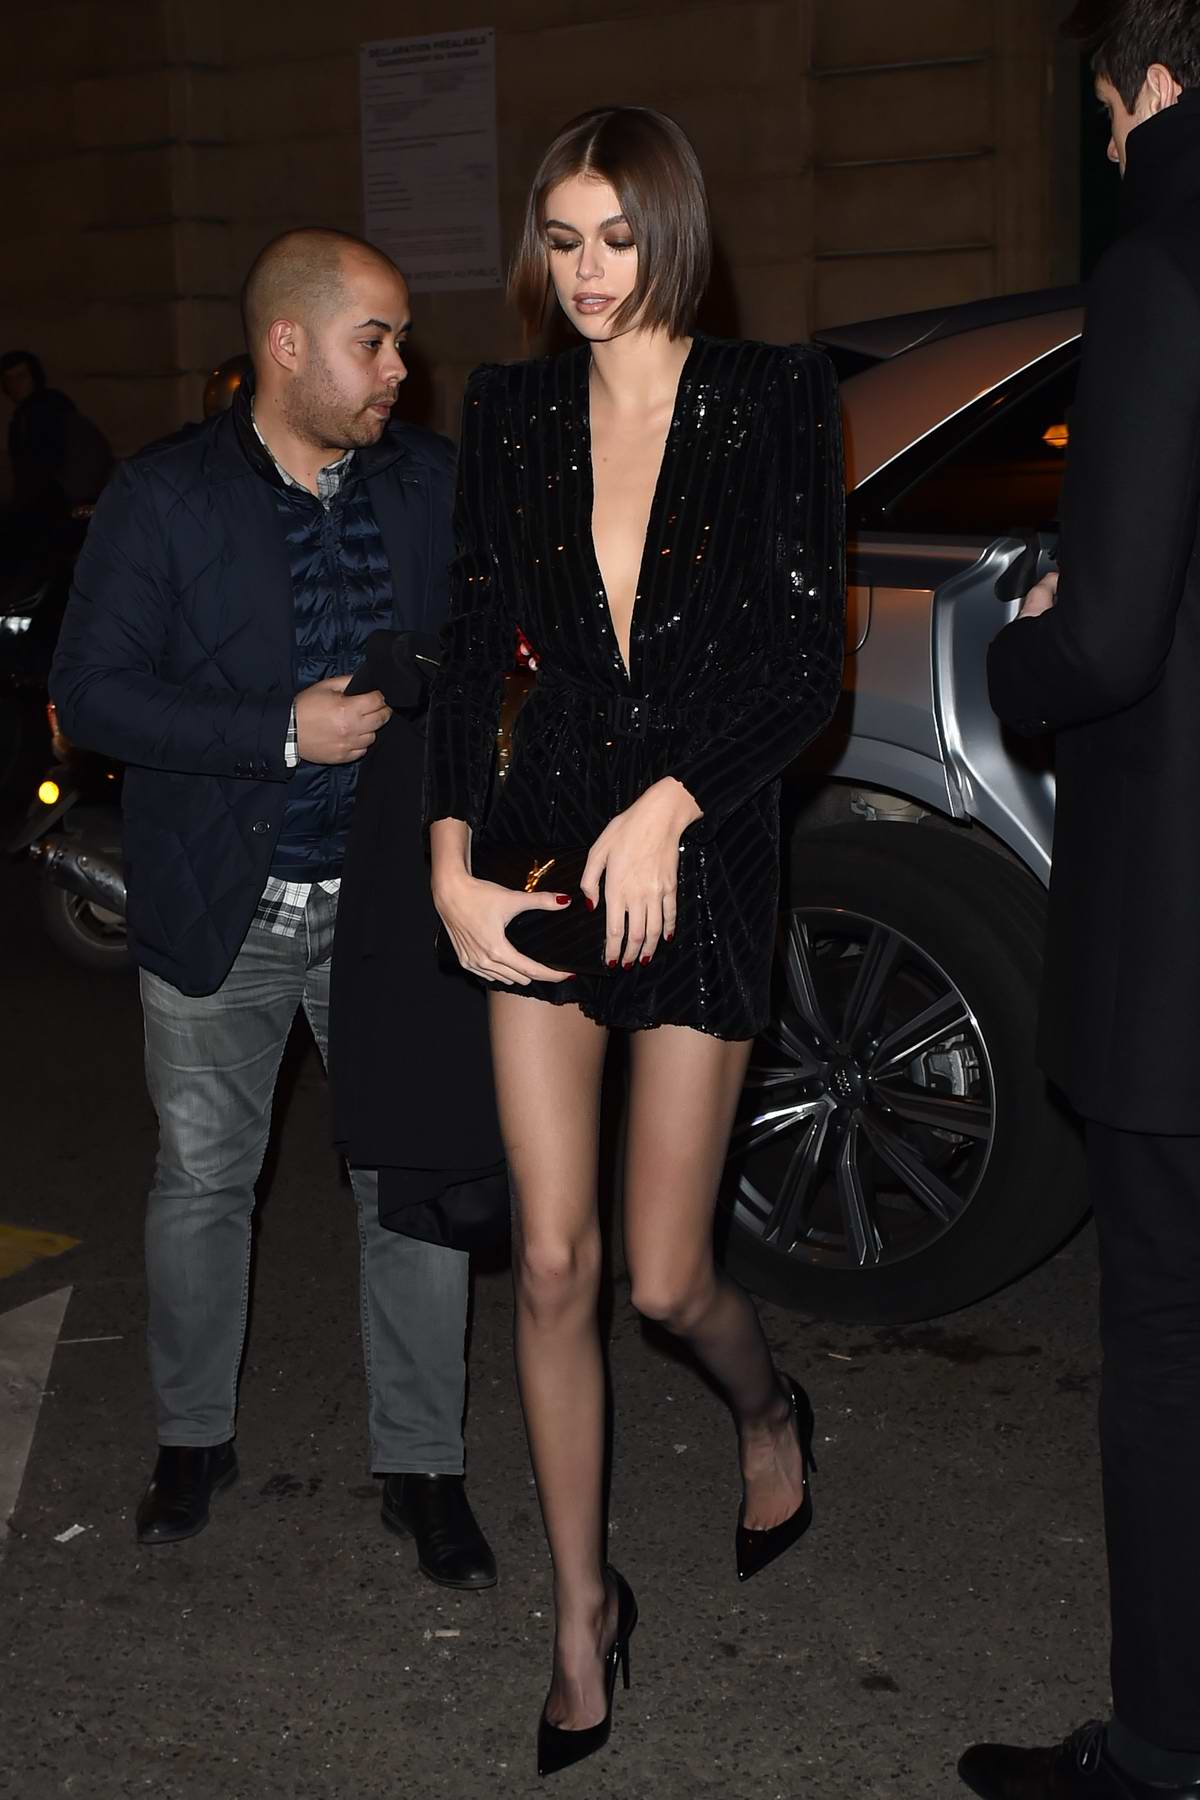 Kaia Gerber looks stunning in a black mini dress as she arrives at the Saint Laurent dinner party in Paris, France